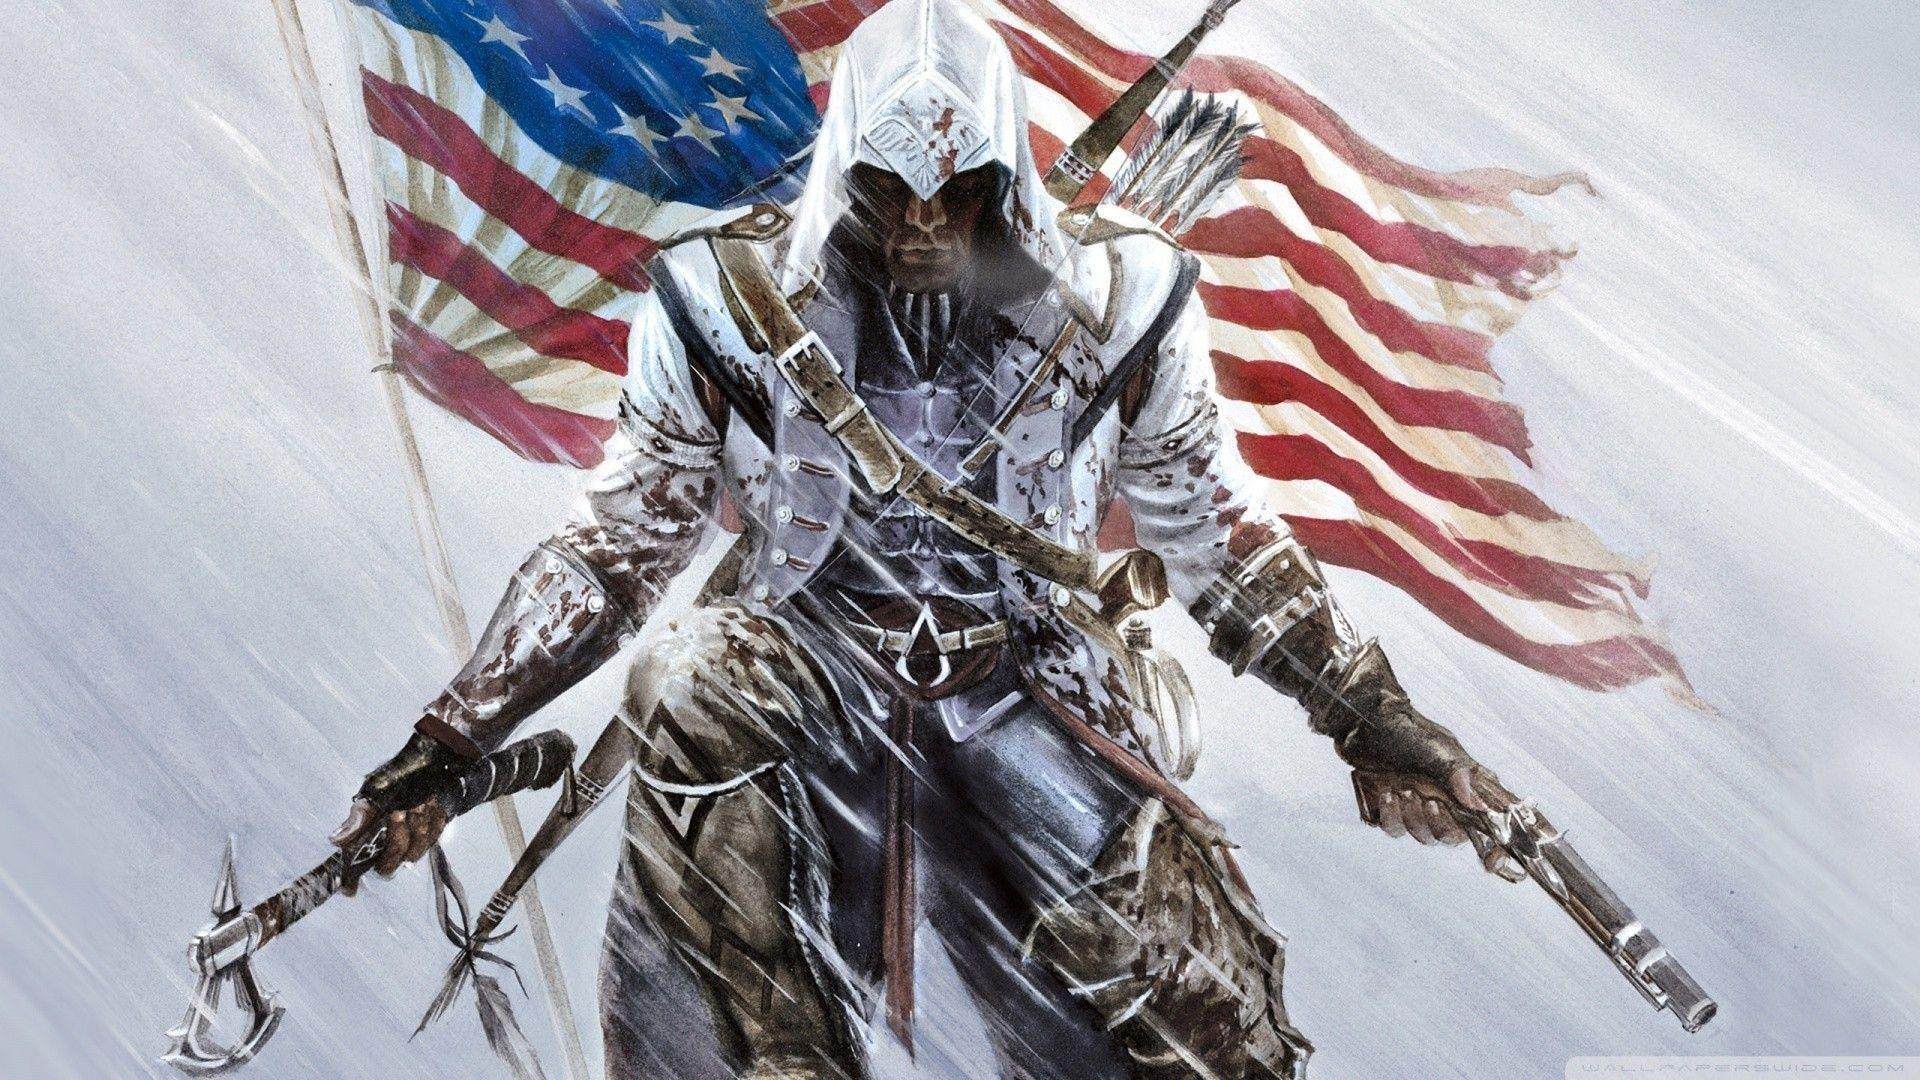 Assassins Creed 3 games hd wallpapers